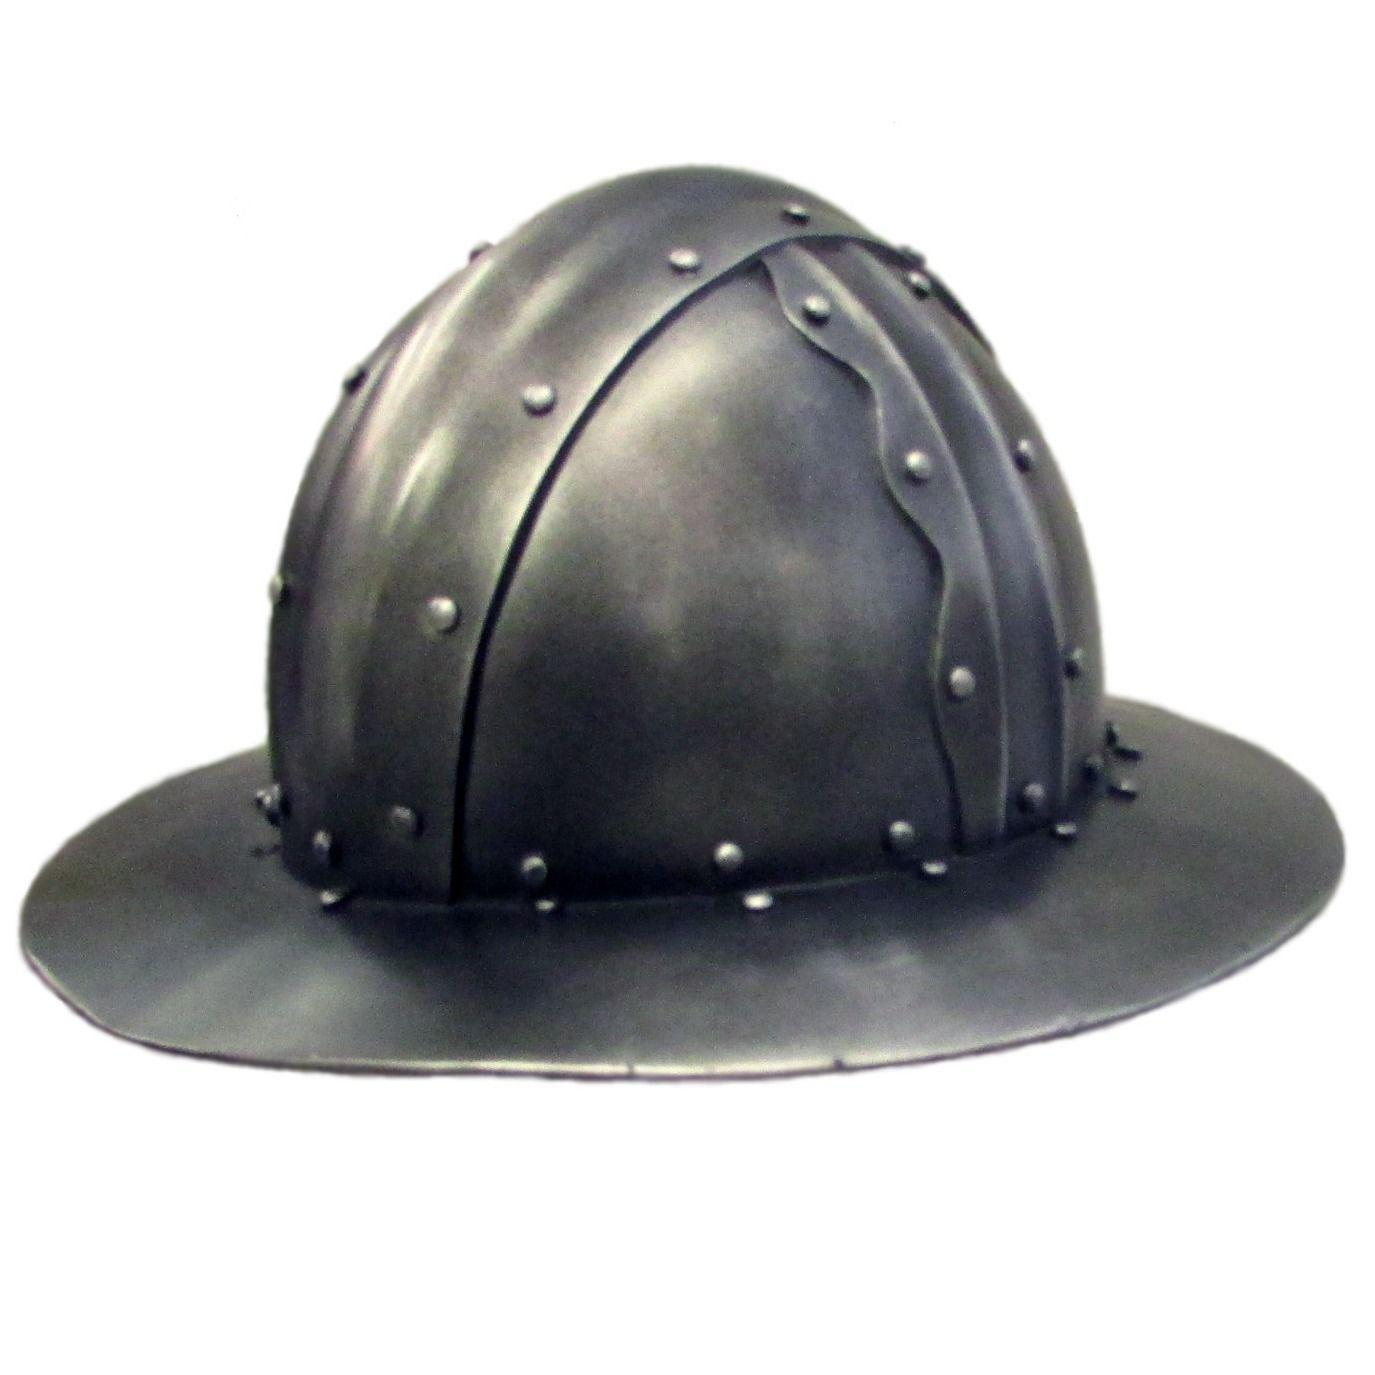 Kettle hat larp helmet